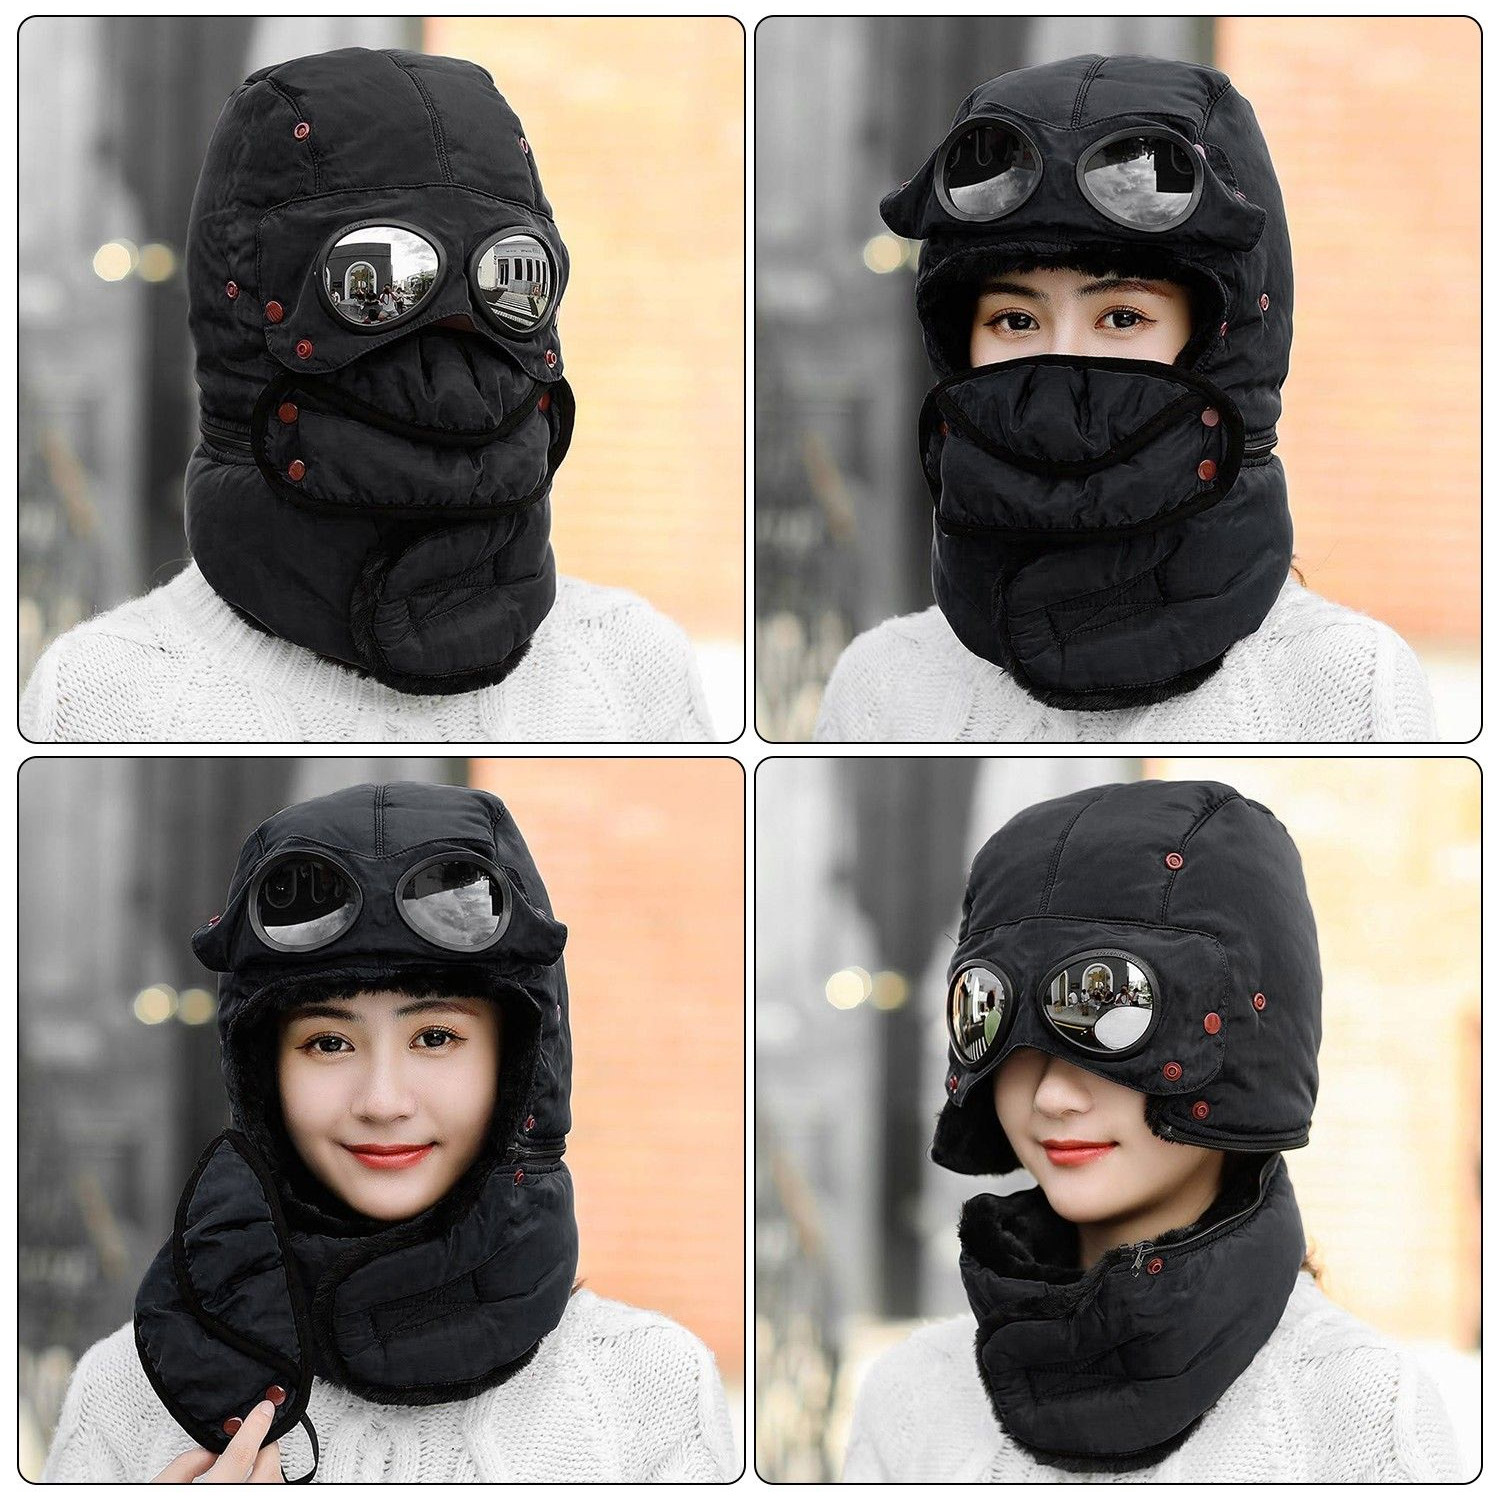 Winter Trapper Hat Covers Your Entire Head, and Has Integrated Sunglasses - Winter hat with face mask and goggles